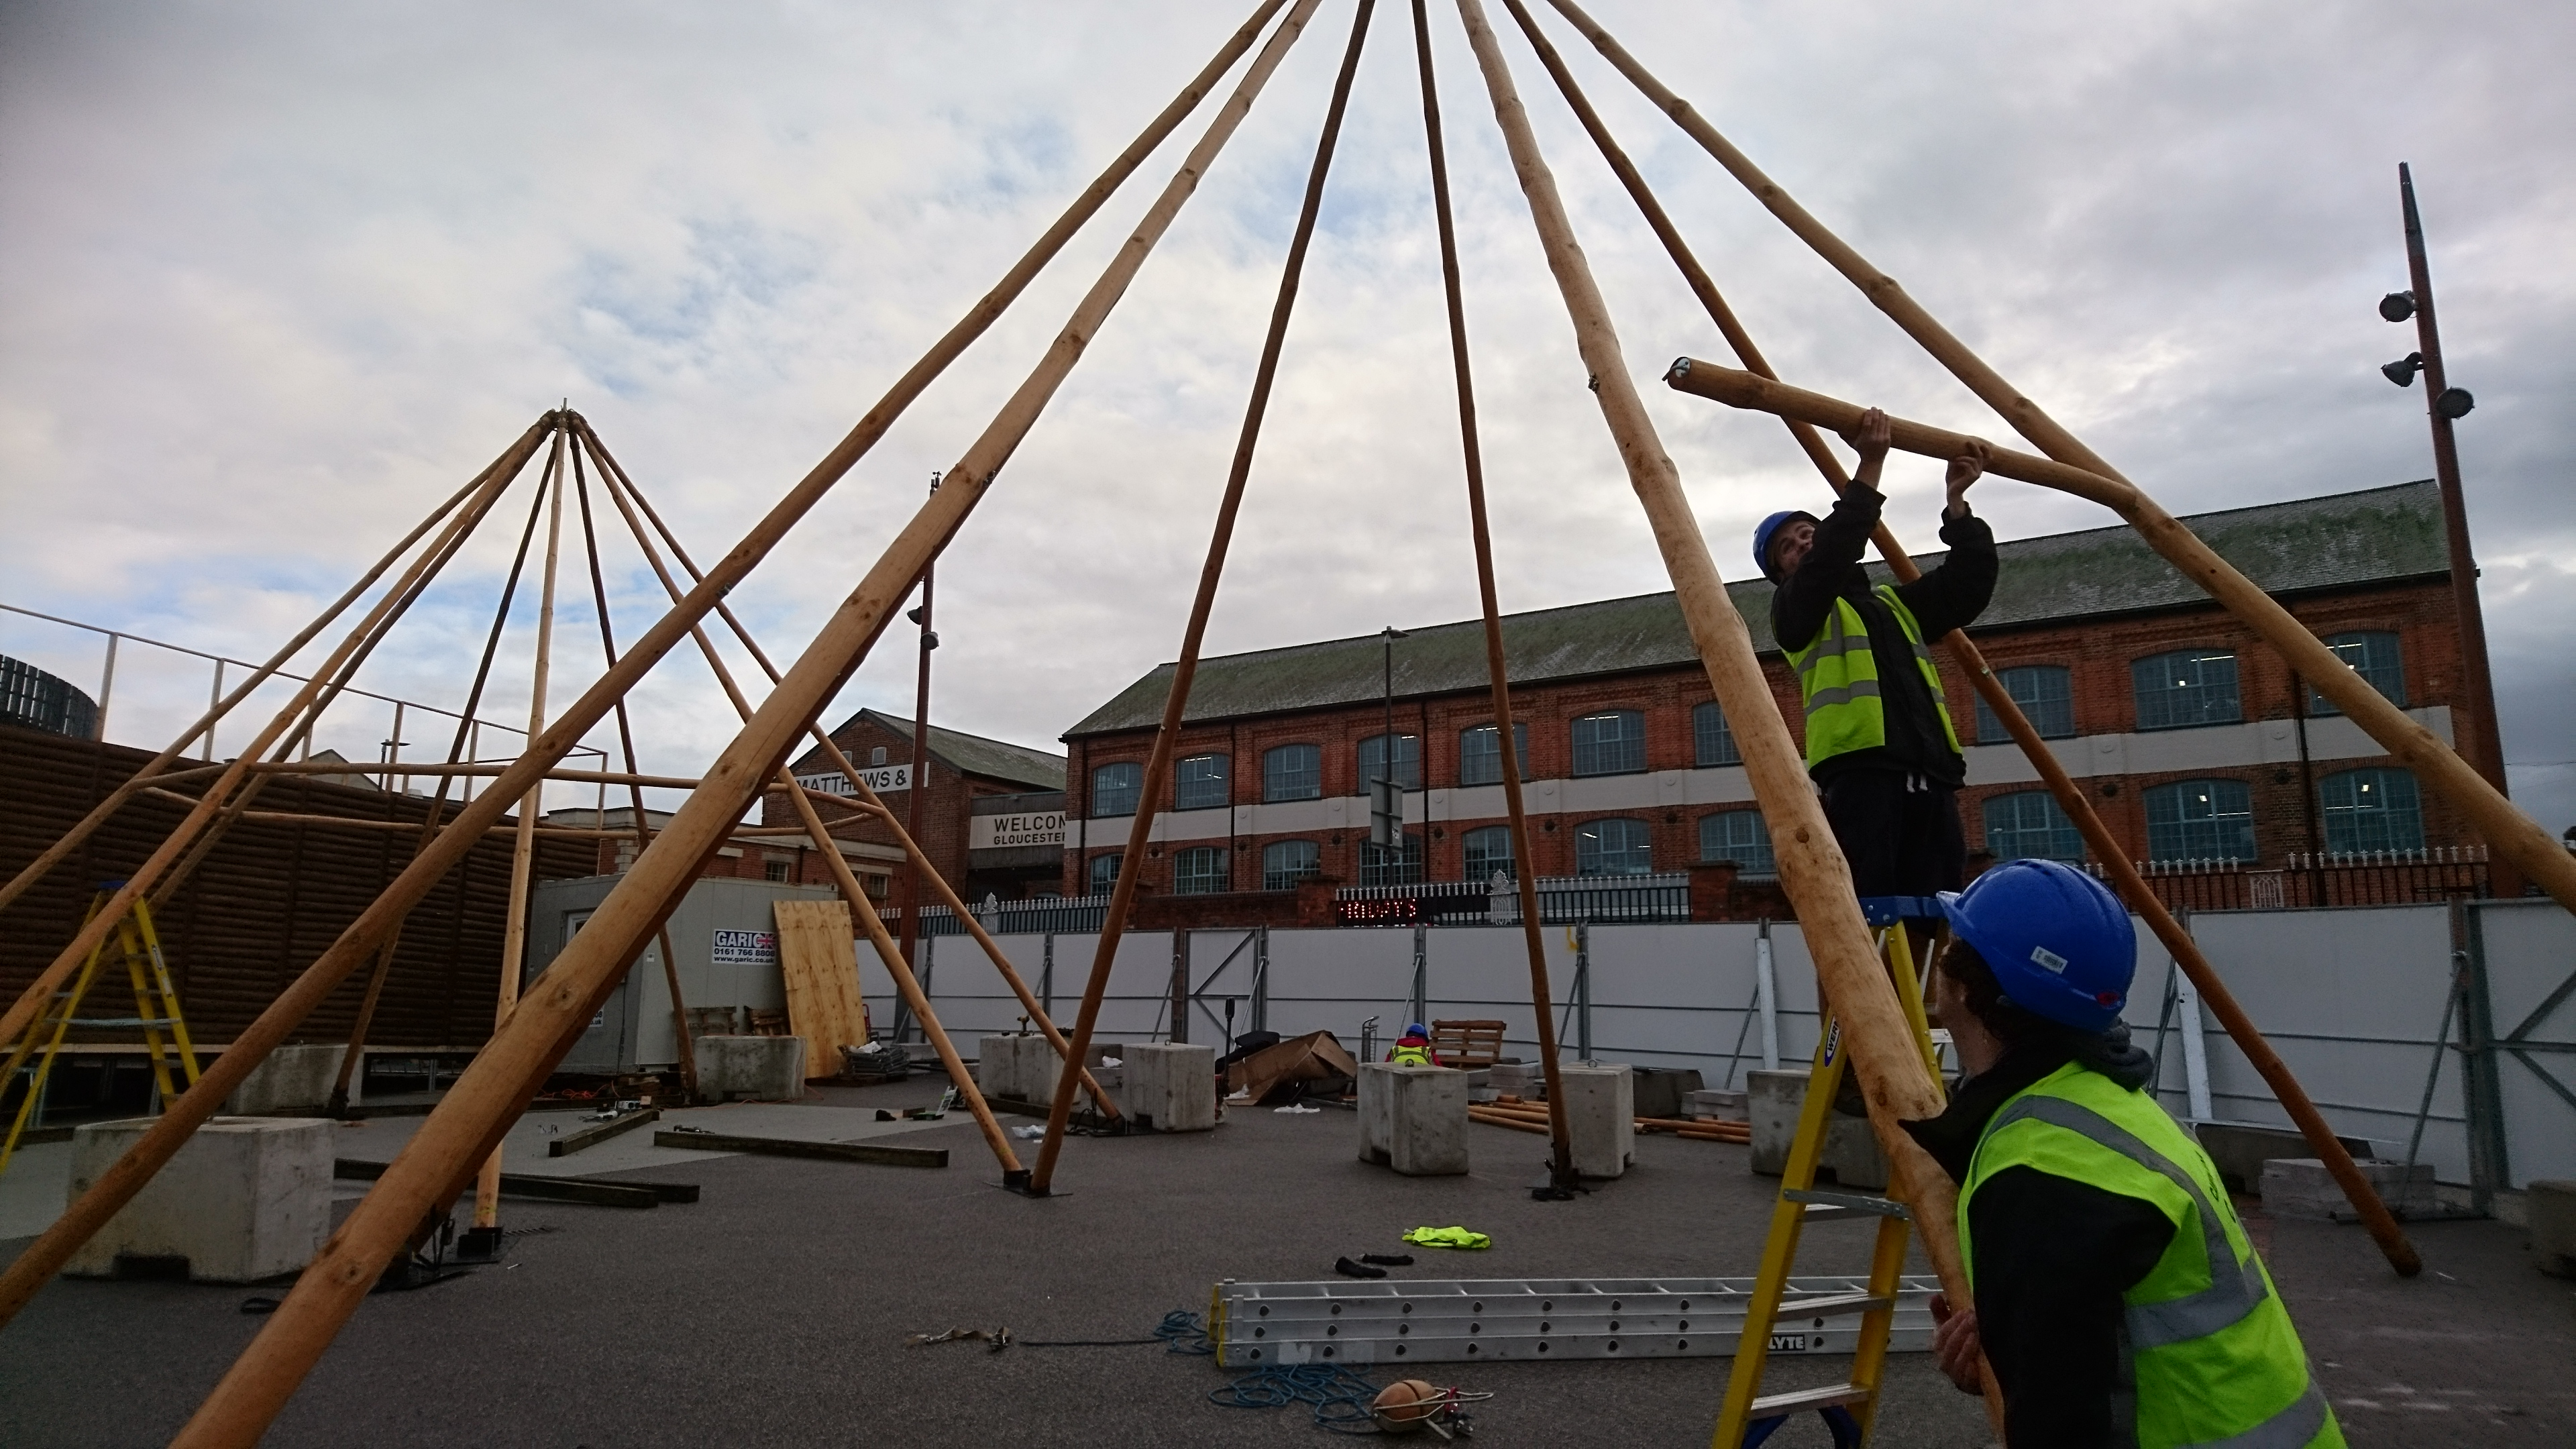 Cotswold Tipis building at Gloucester Quays